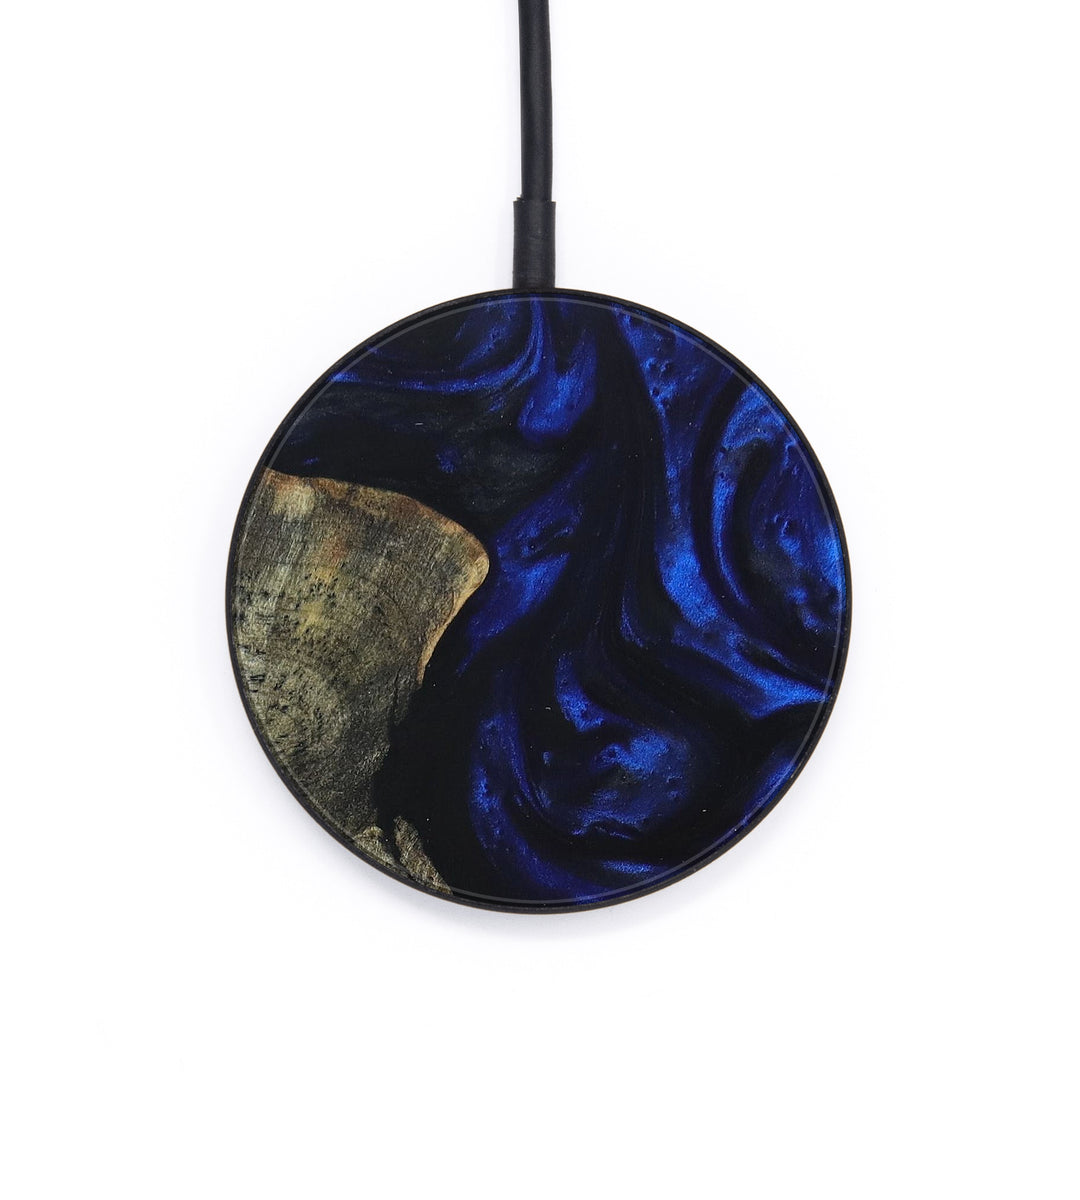 Circle Wood+Resin Wireless Charger - Erlene (Dark Blue, 392930)